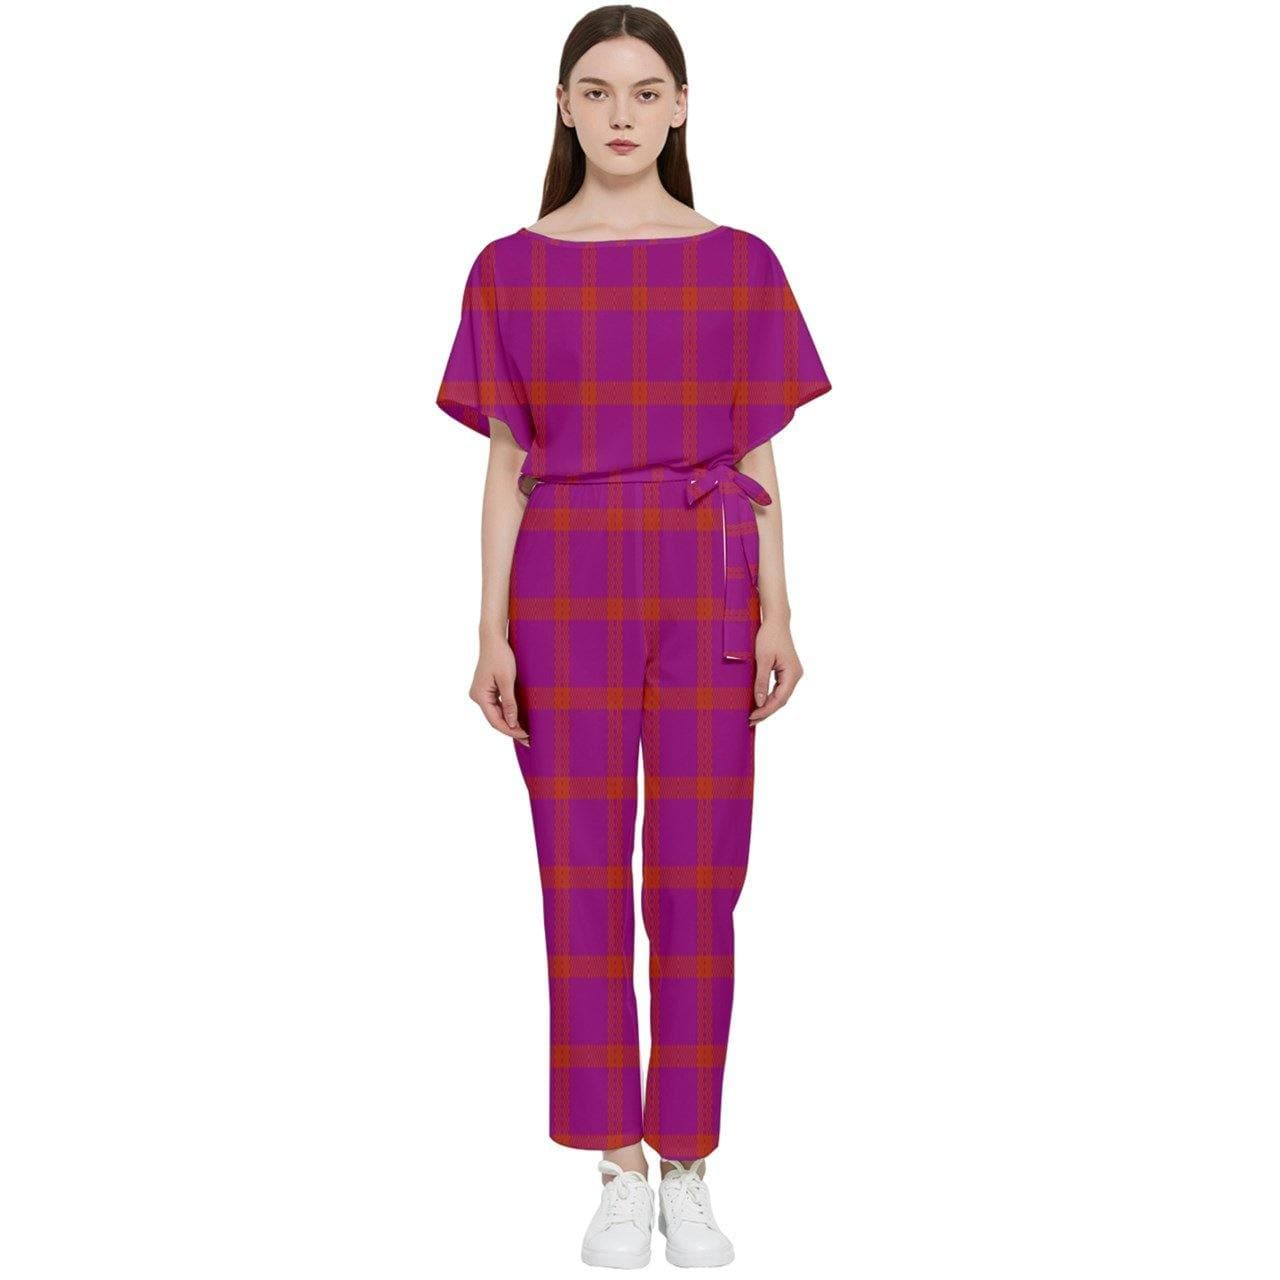 Perfusion Plaid Batwing Jumpsuit - 3 variations - Tie-Fly